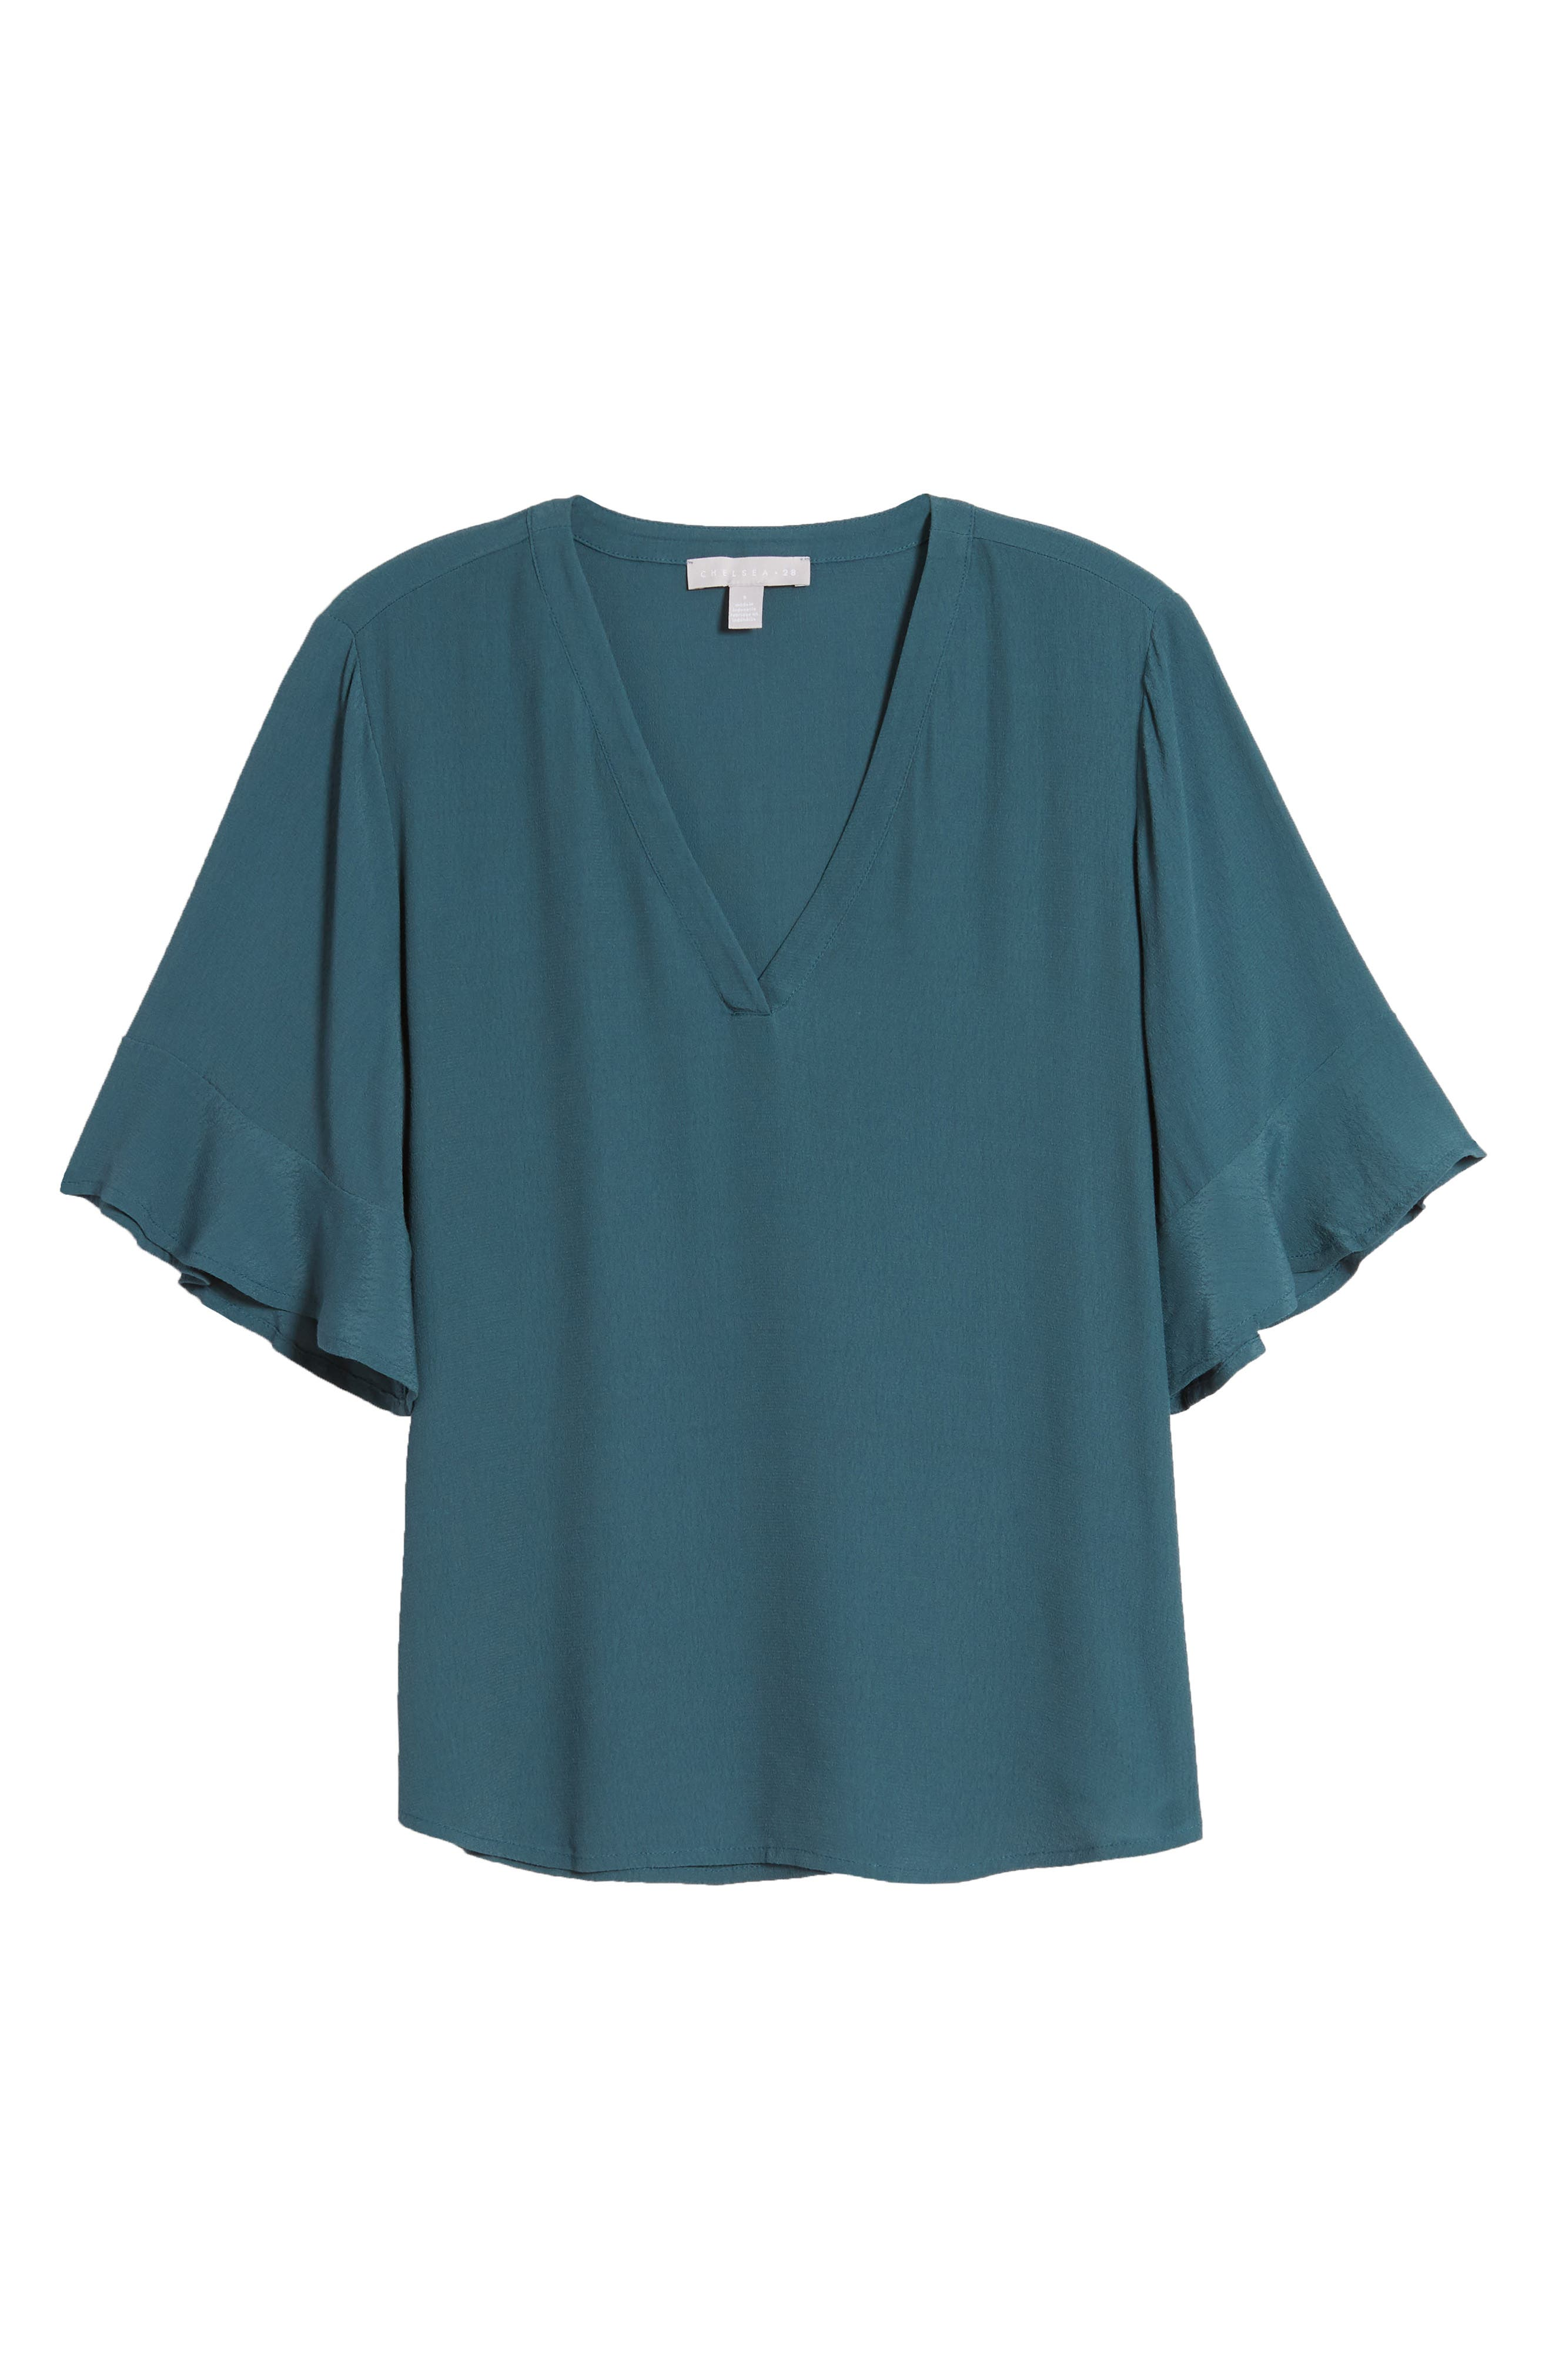 Gentle ruffles trim the sleeves of a sophisticated woven top complete with a flattering V-neck. Style Name: Chelsea28 Ruffle Sleeve V-Neck Top. Style Number: 5990909. Available in stores.